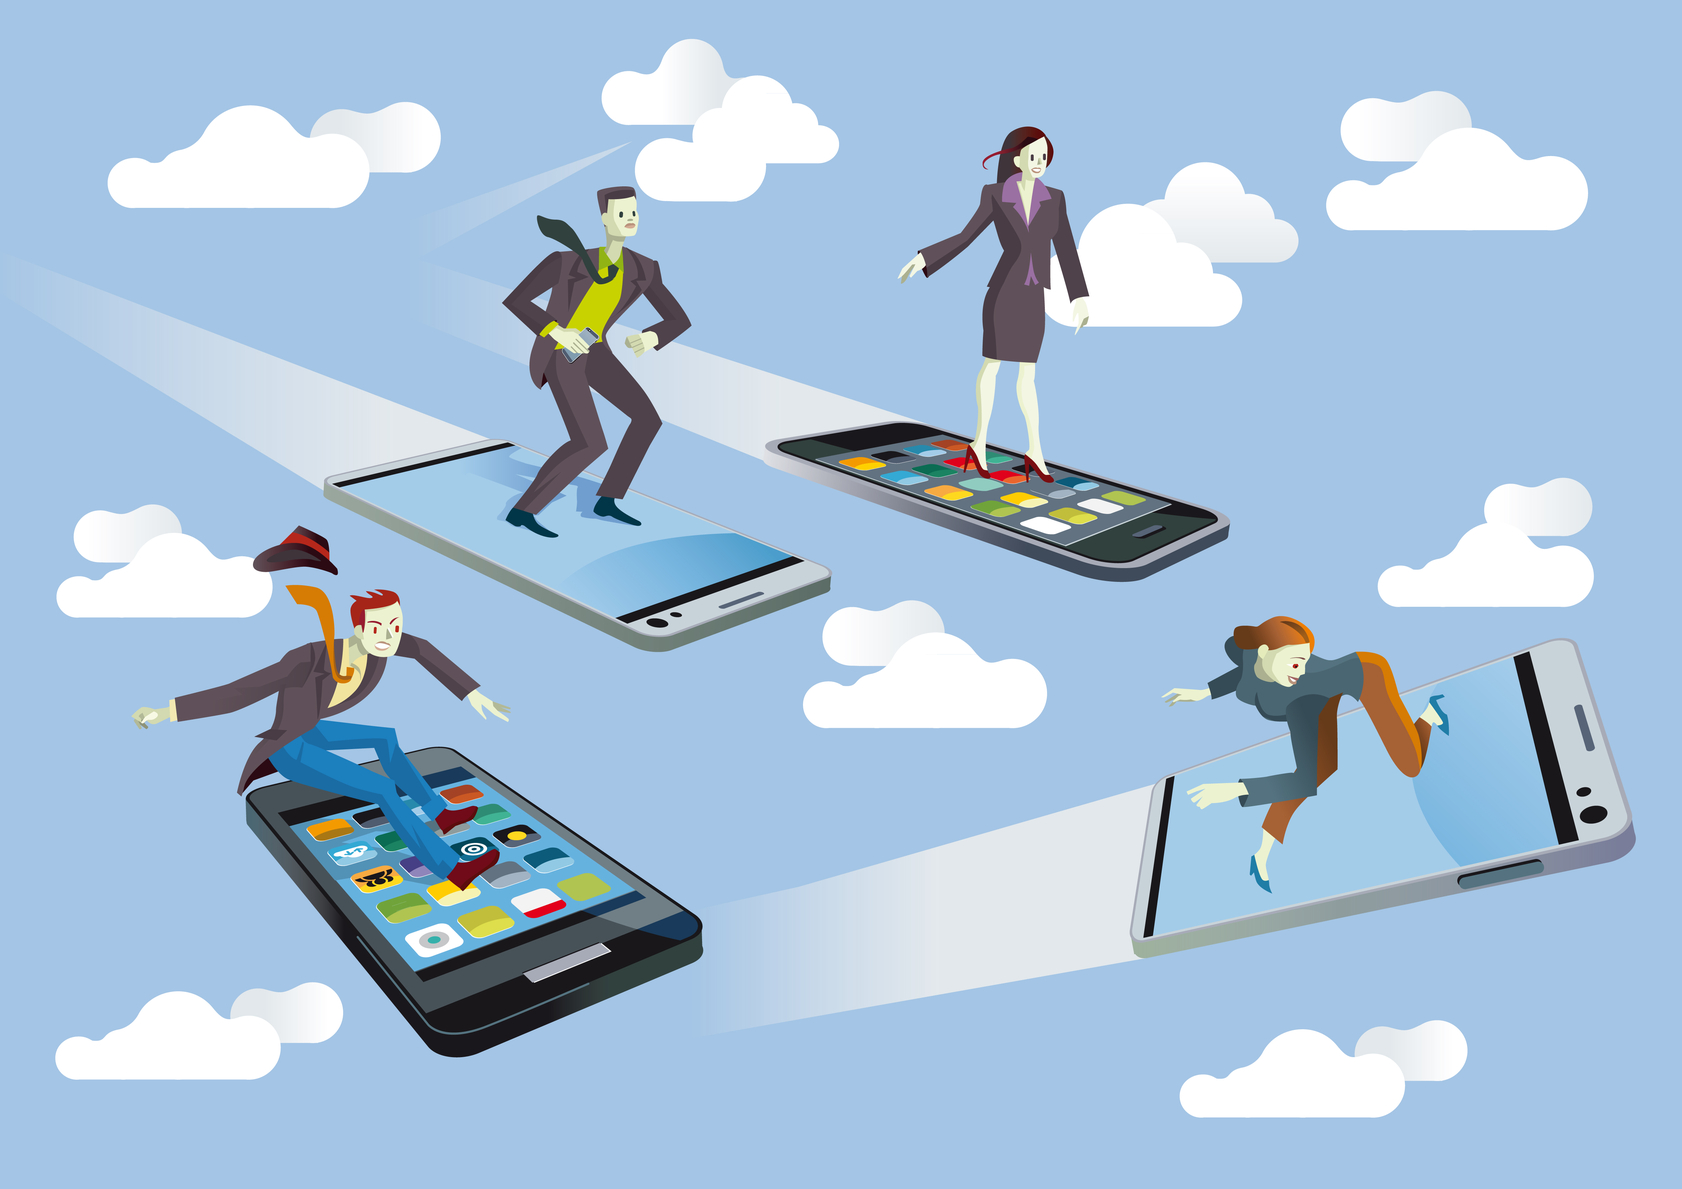 Business people with Flying smartphones